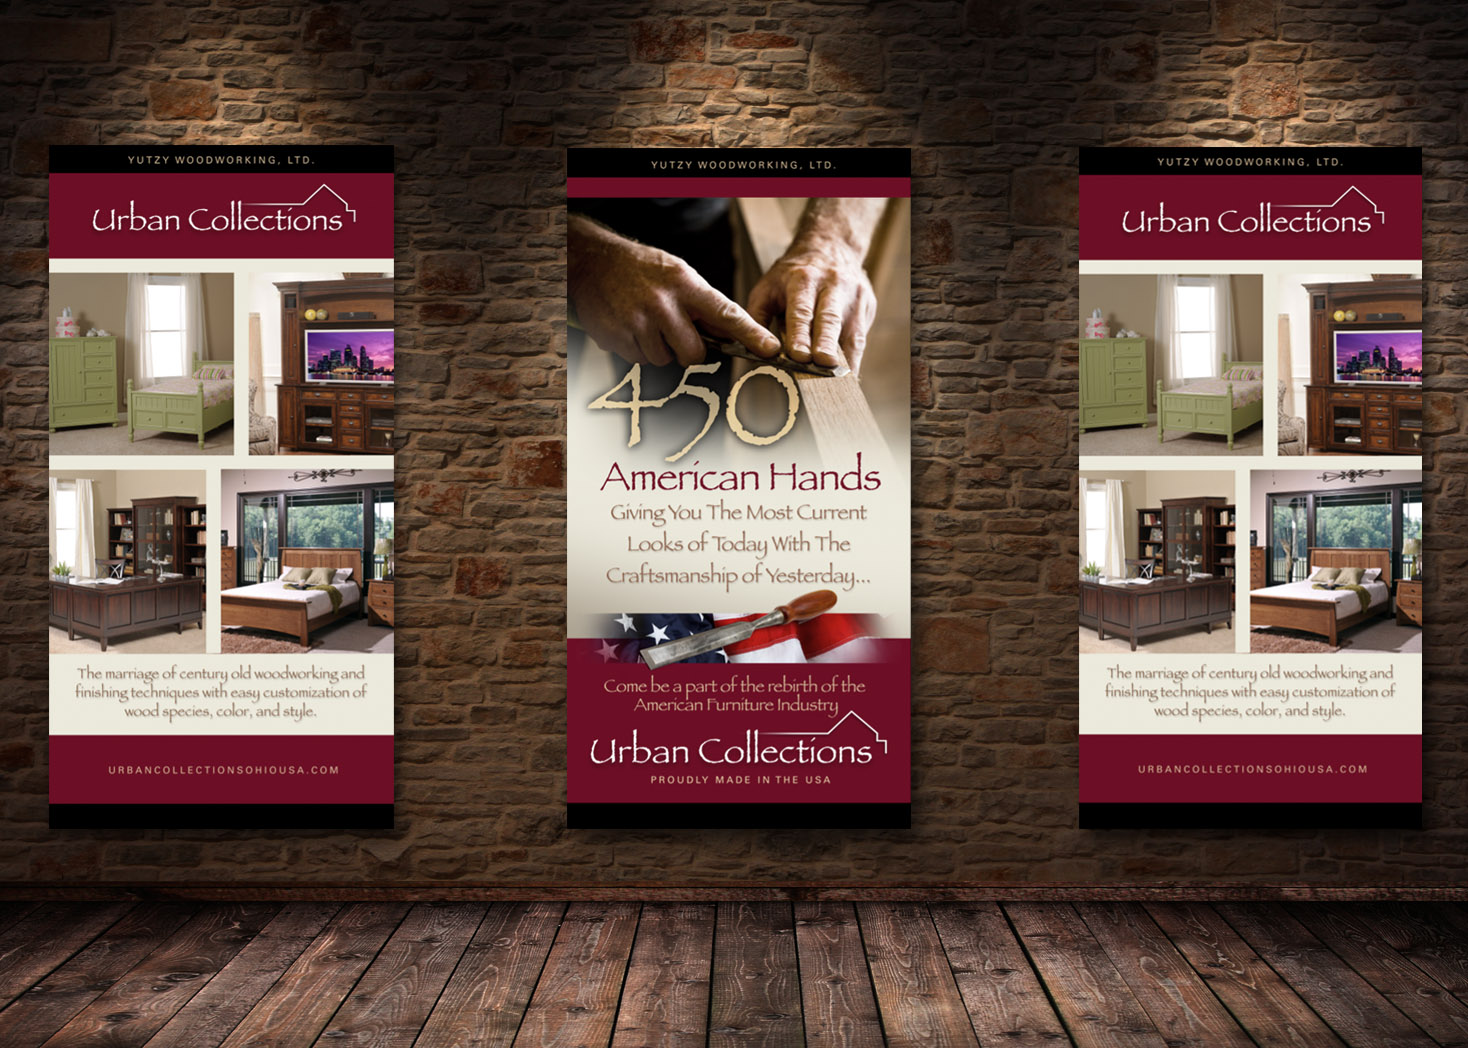 Urban Collections of Ohio - Retail Signage Design - Les Lehman